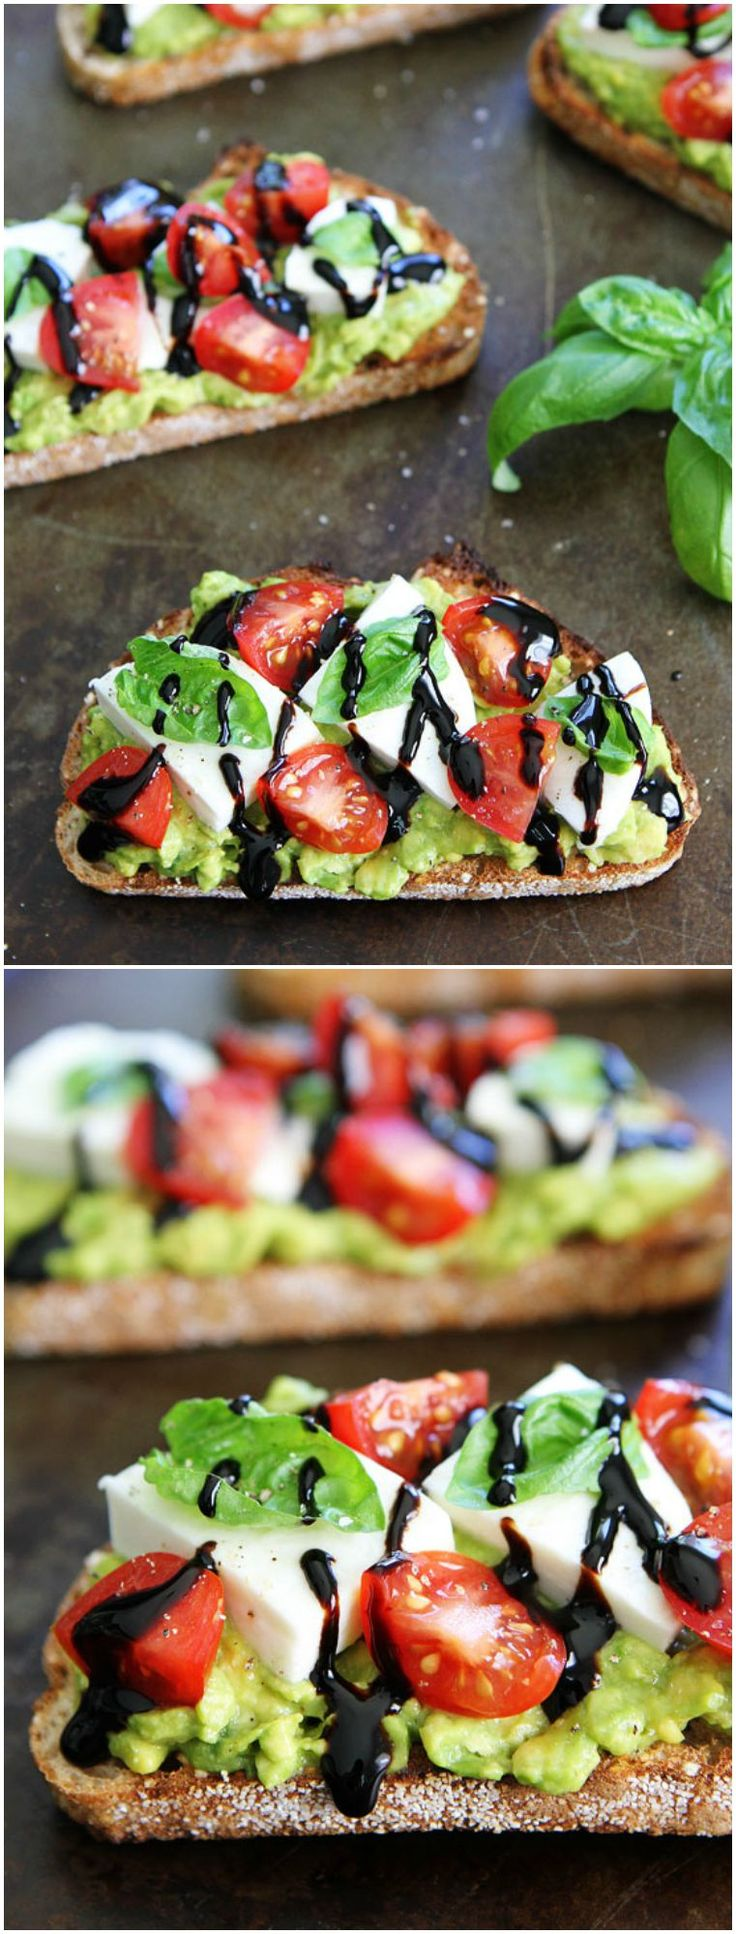 Caprese Avocado Toast Recipe on twopeasandtheirpod.com. The BEST avocado toast! You HAVE to try this one!